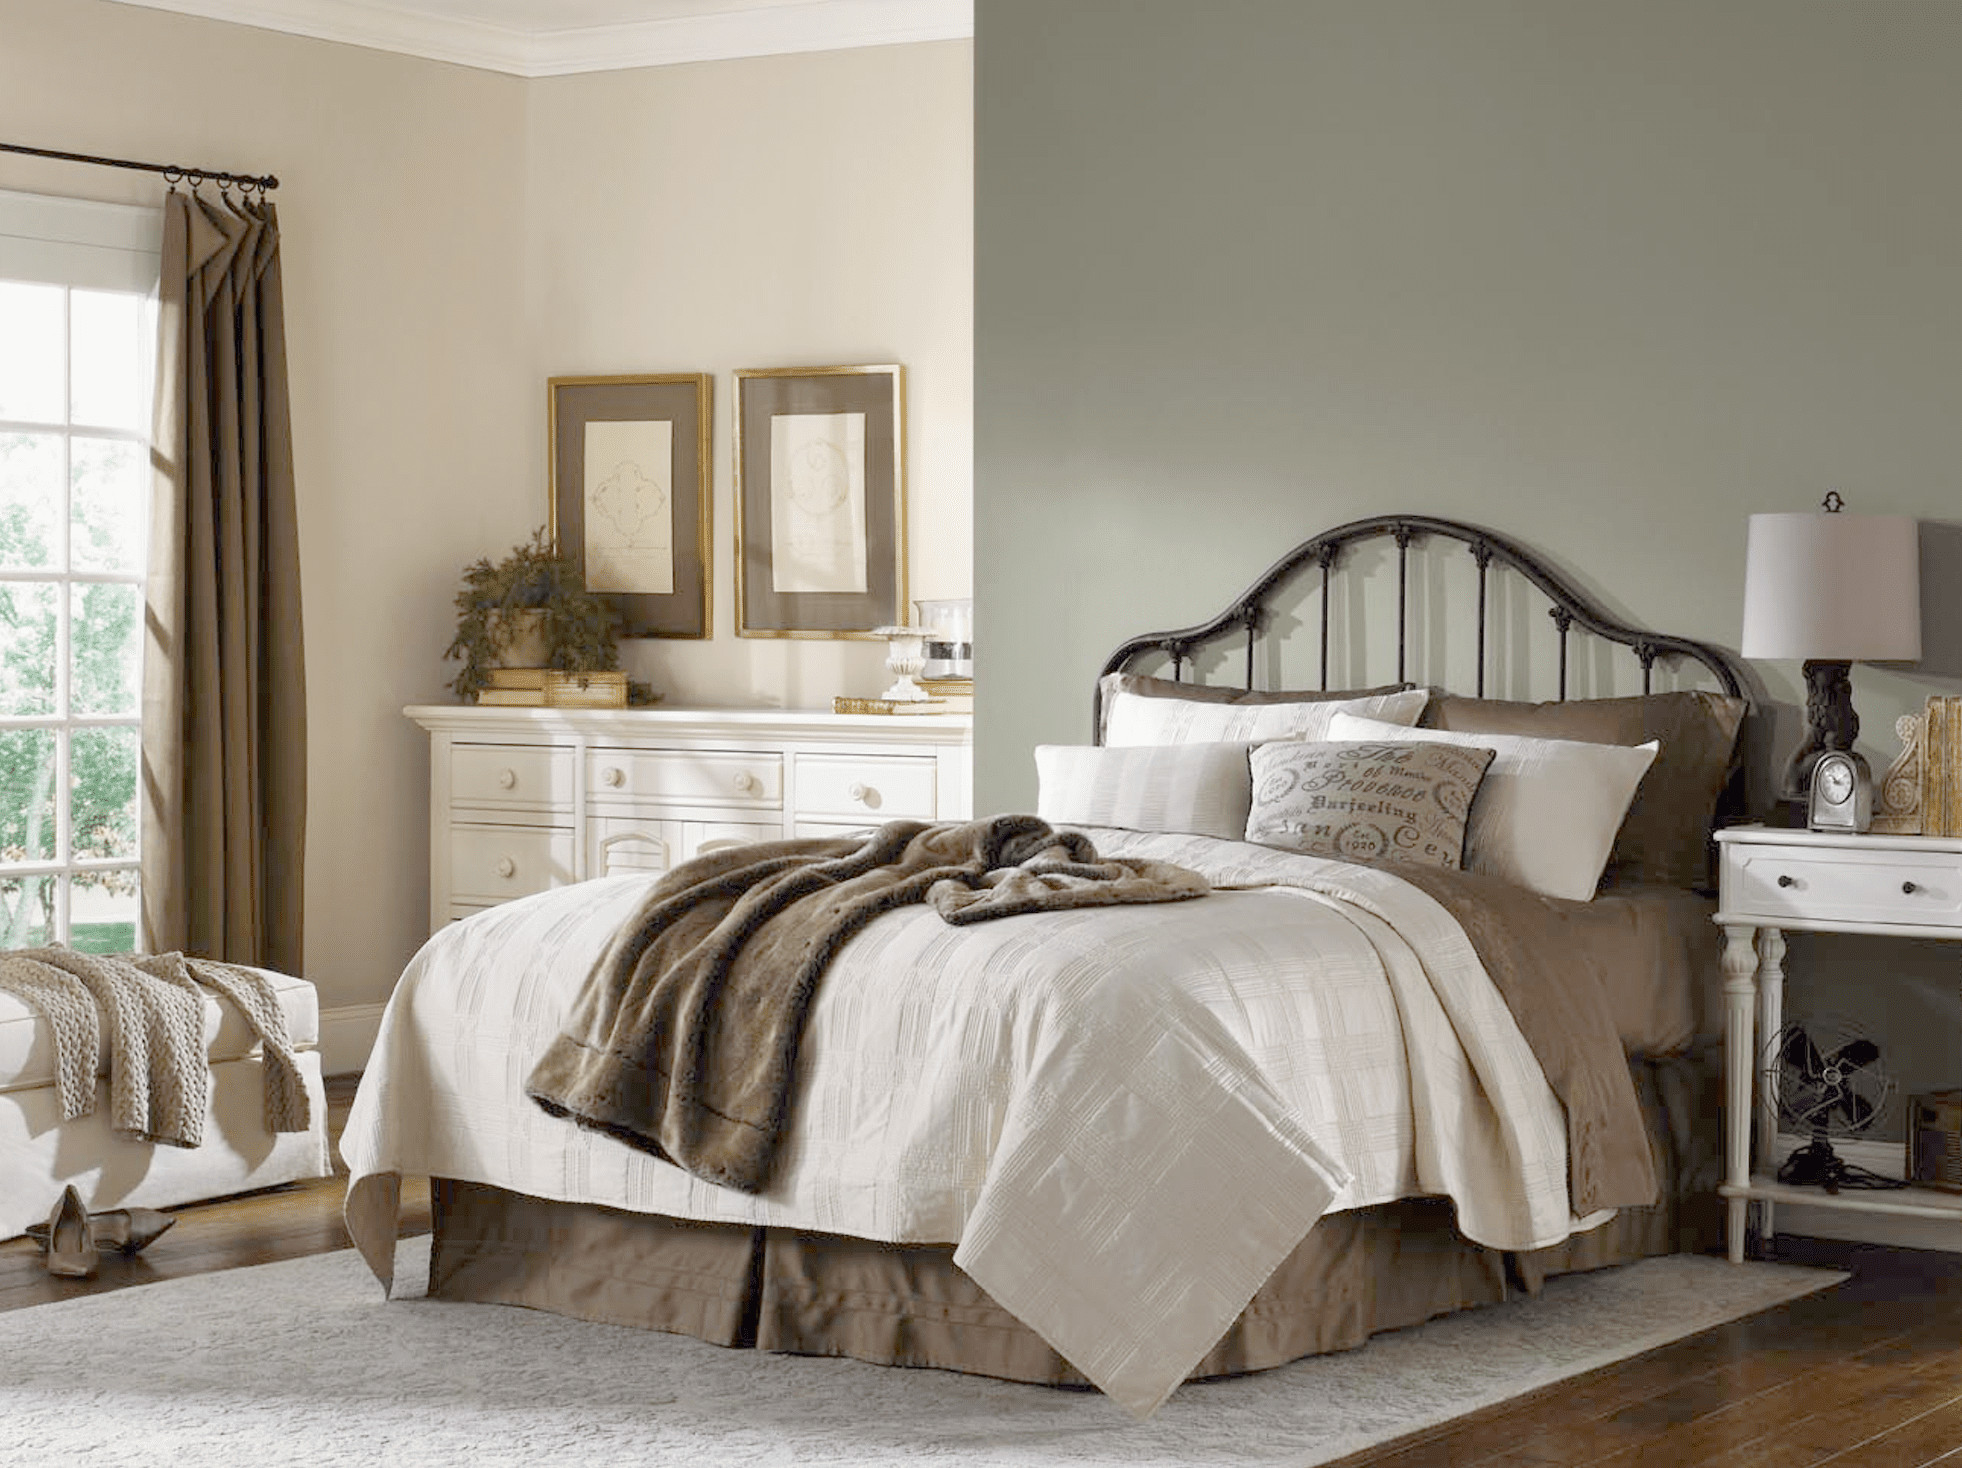 Sage Green Bedroom Ideas New 8 Relaxing Sherwin Williams Paint Colors for Bedrooms